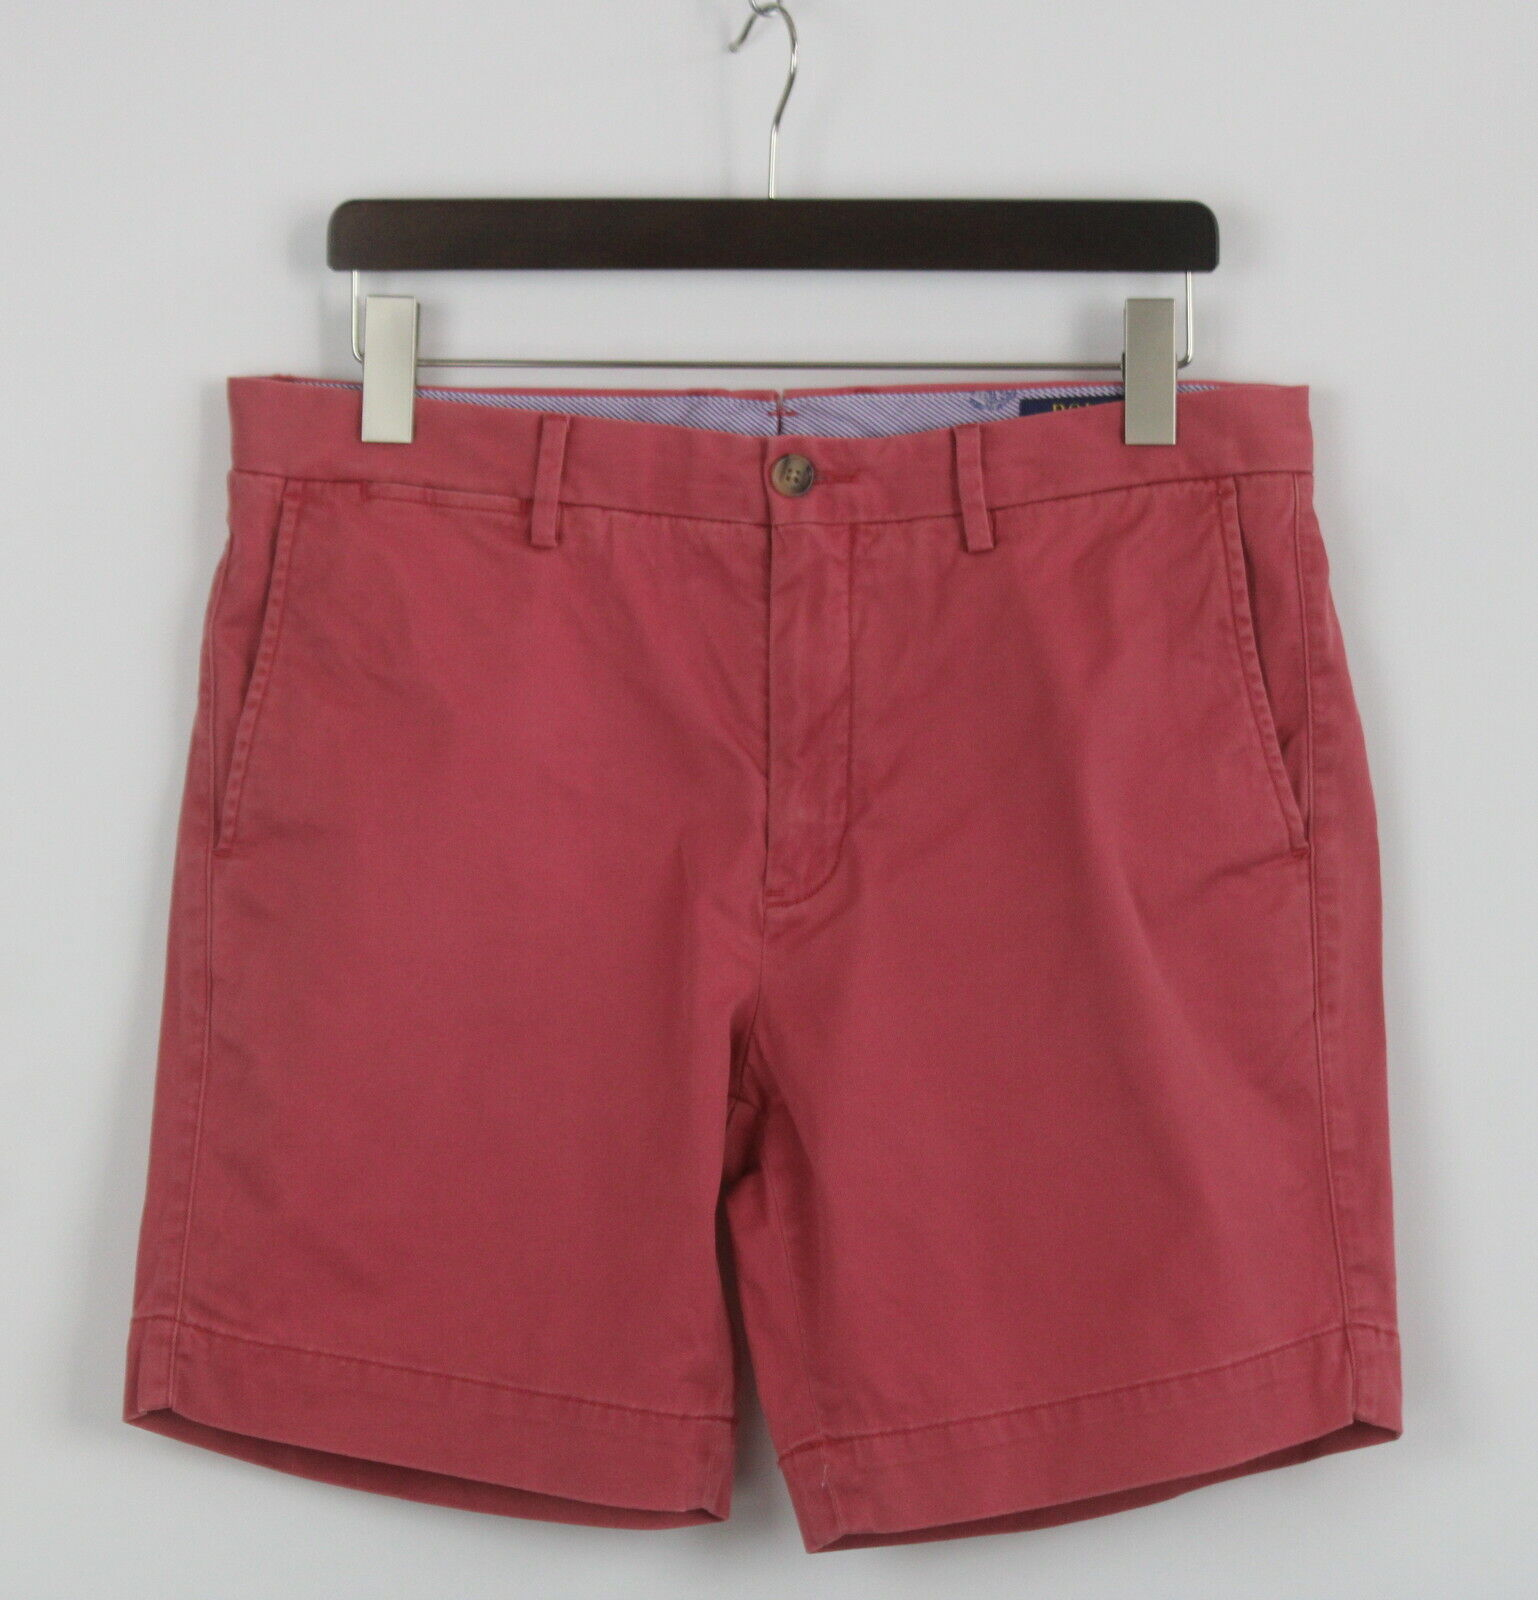 Polo ralph lauren extensible droit homme w33 punch zip fly short chino 25876-js